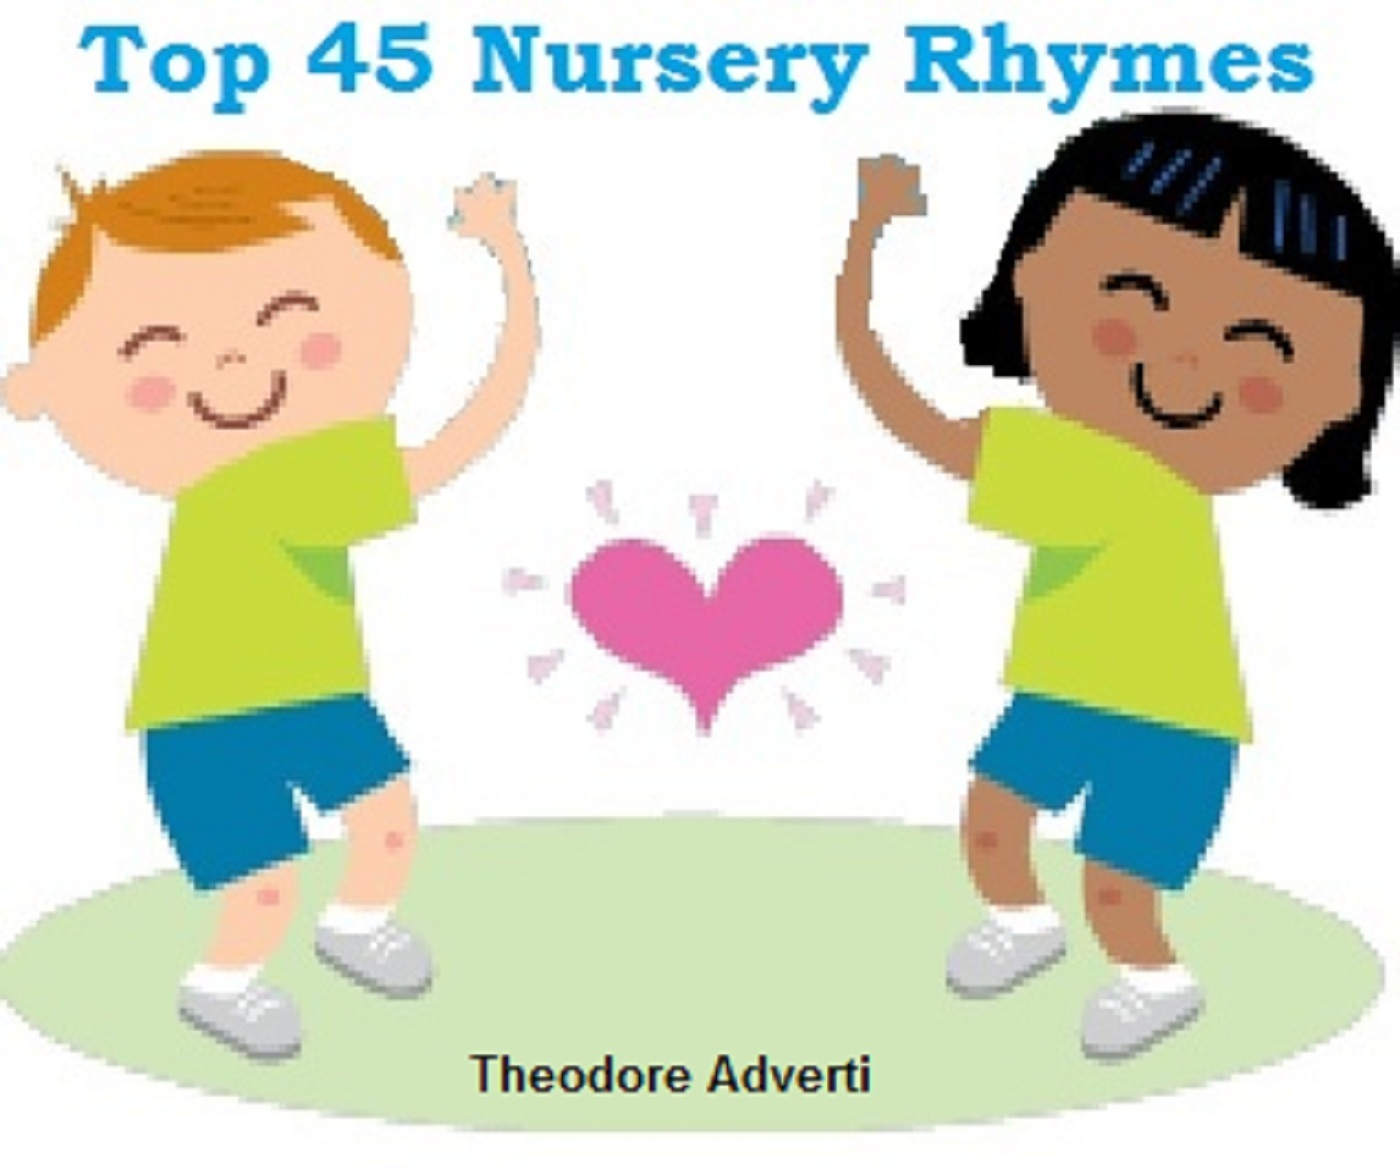 Top 45 Nursery Rhymes